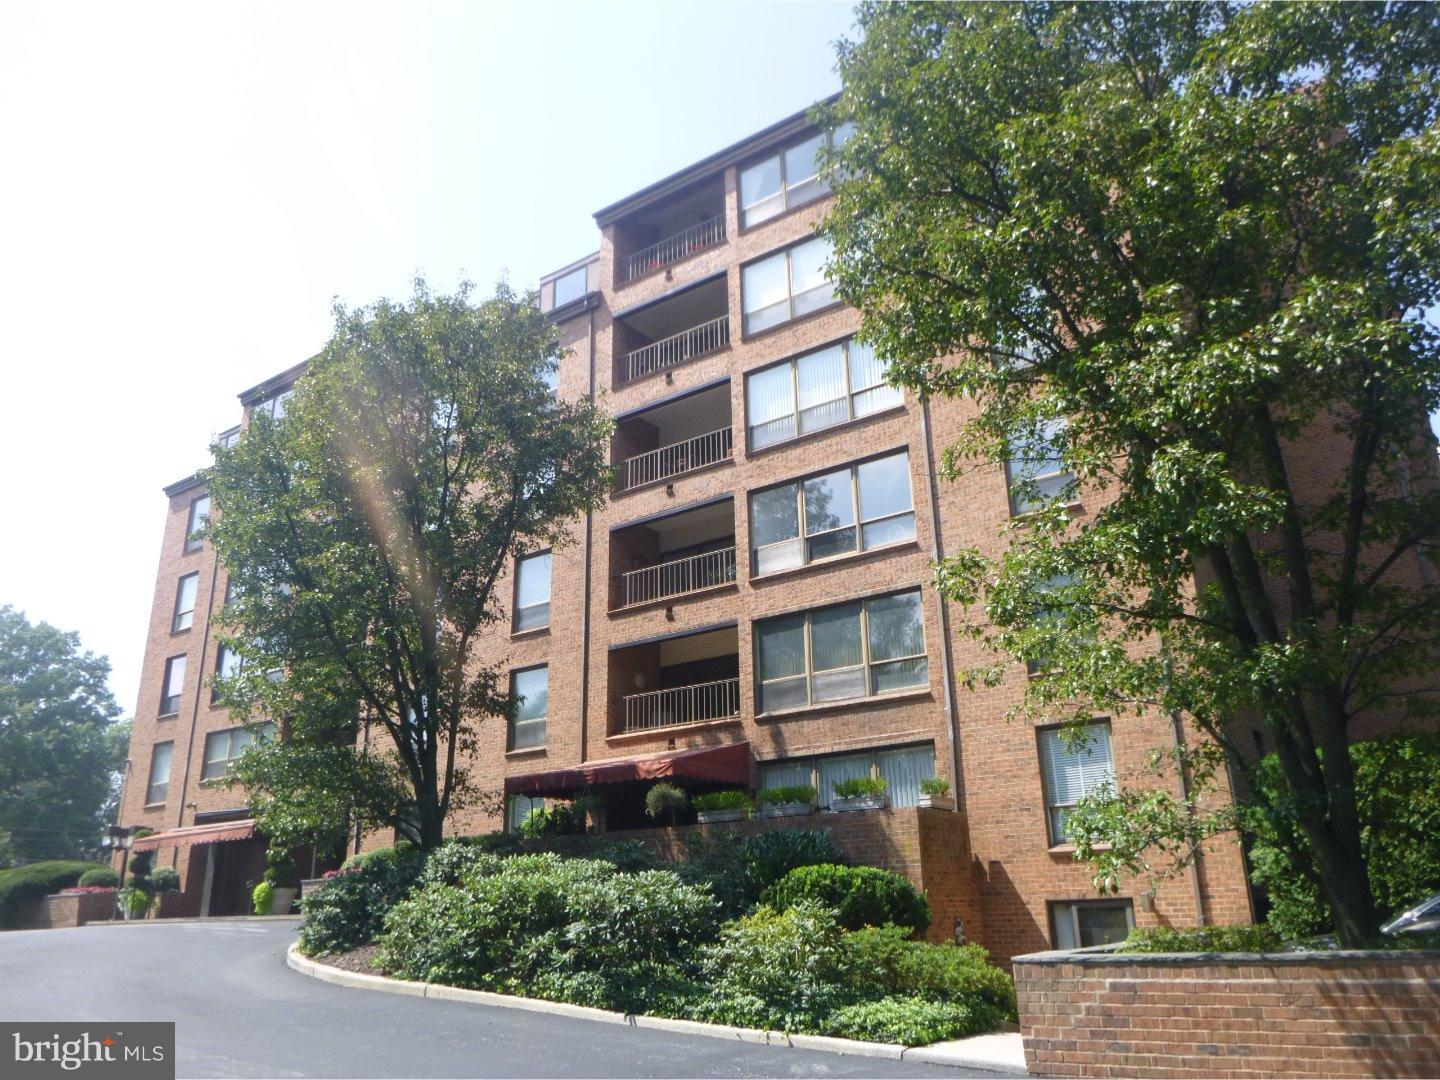 100 Grays Lane #402-4 Haverford, PA 19041